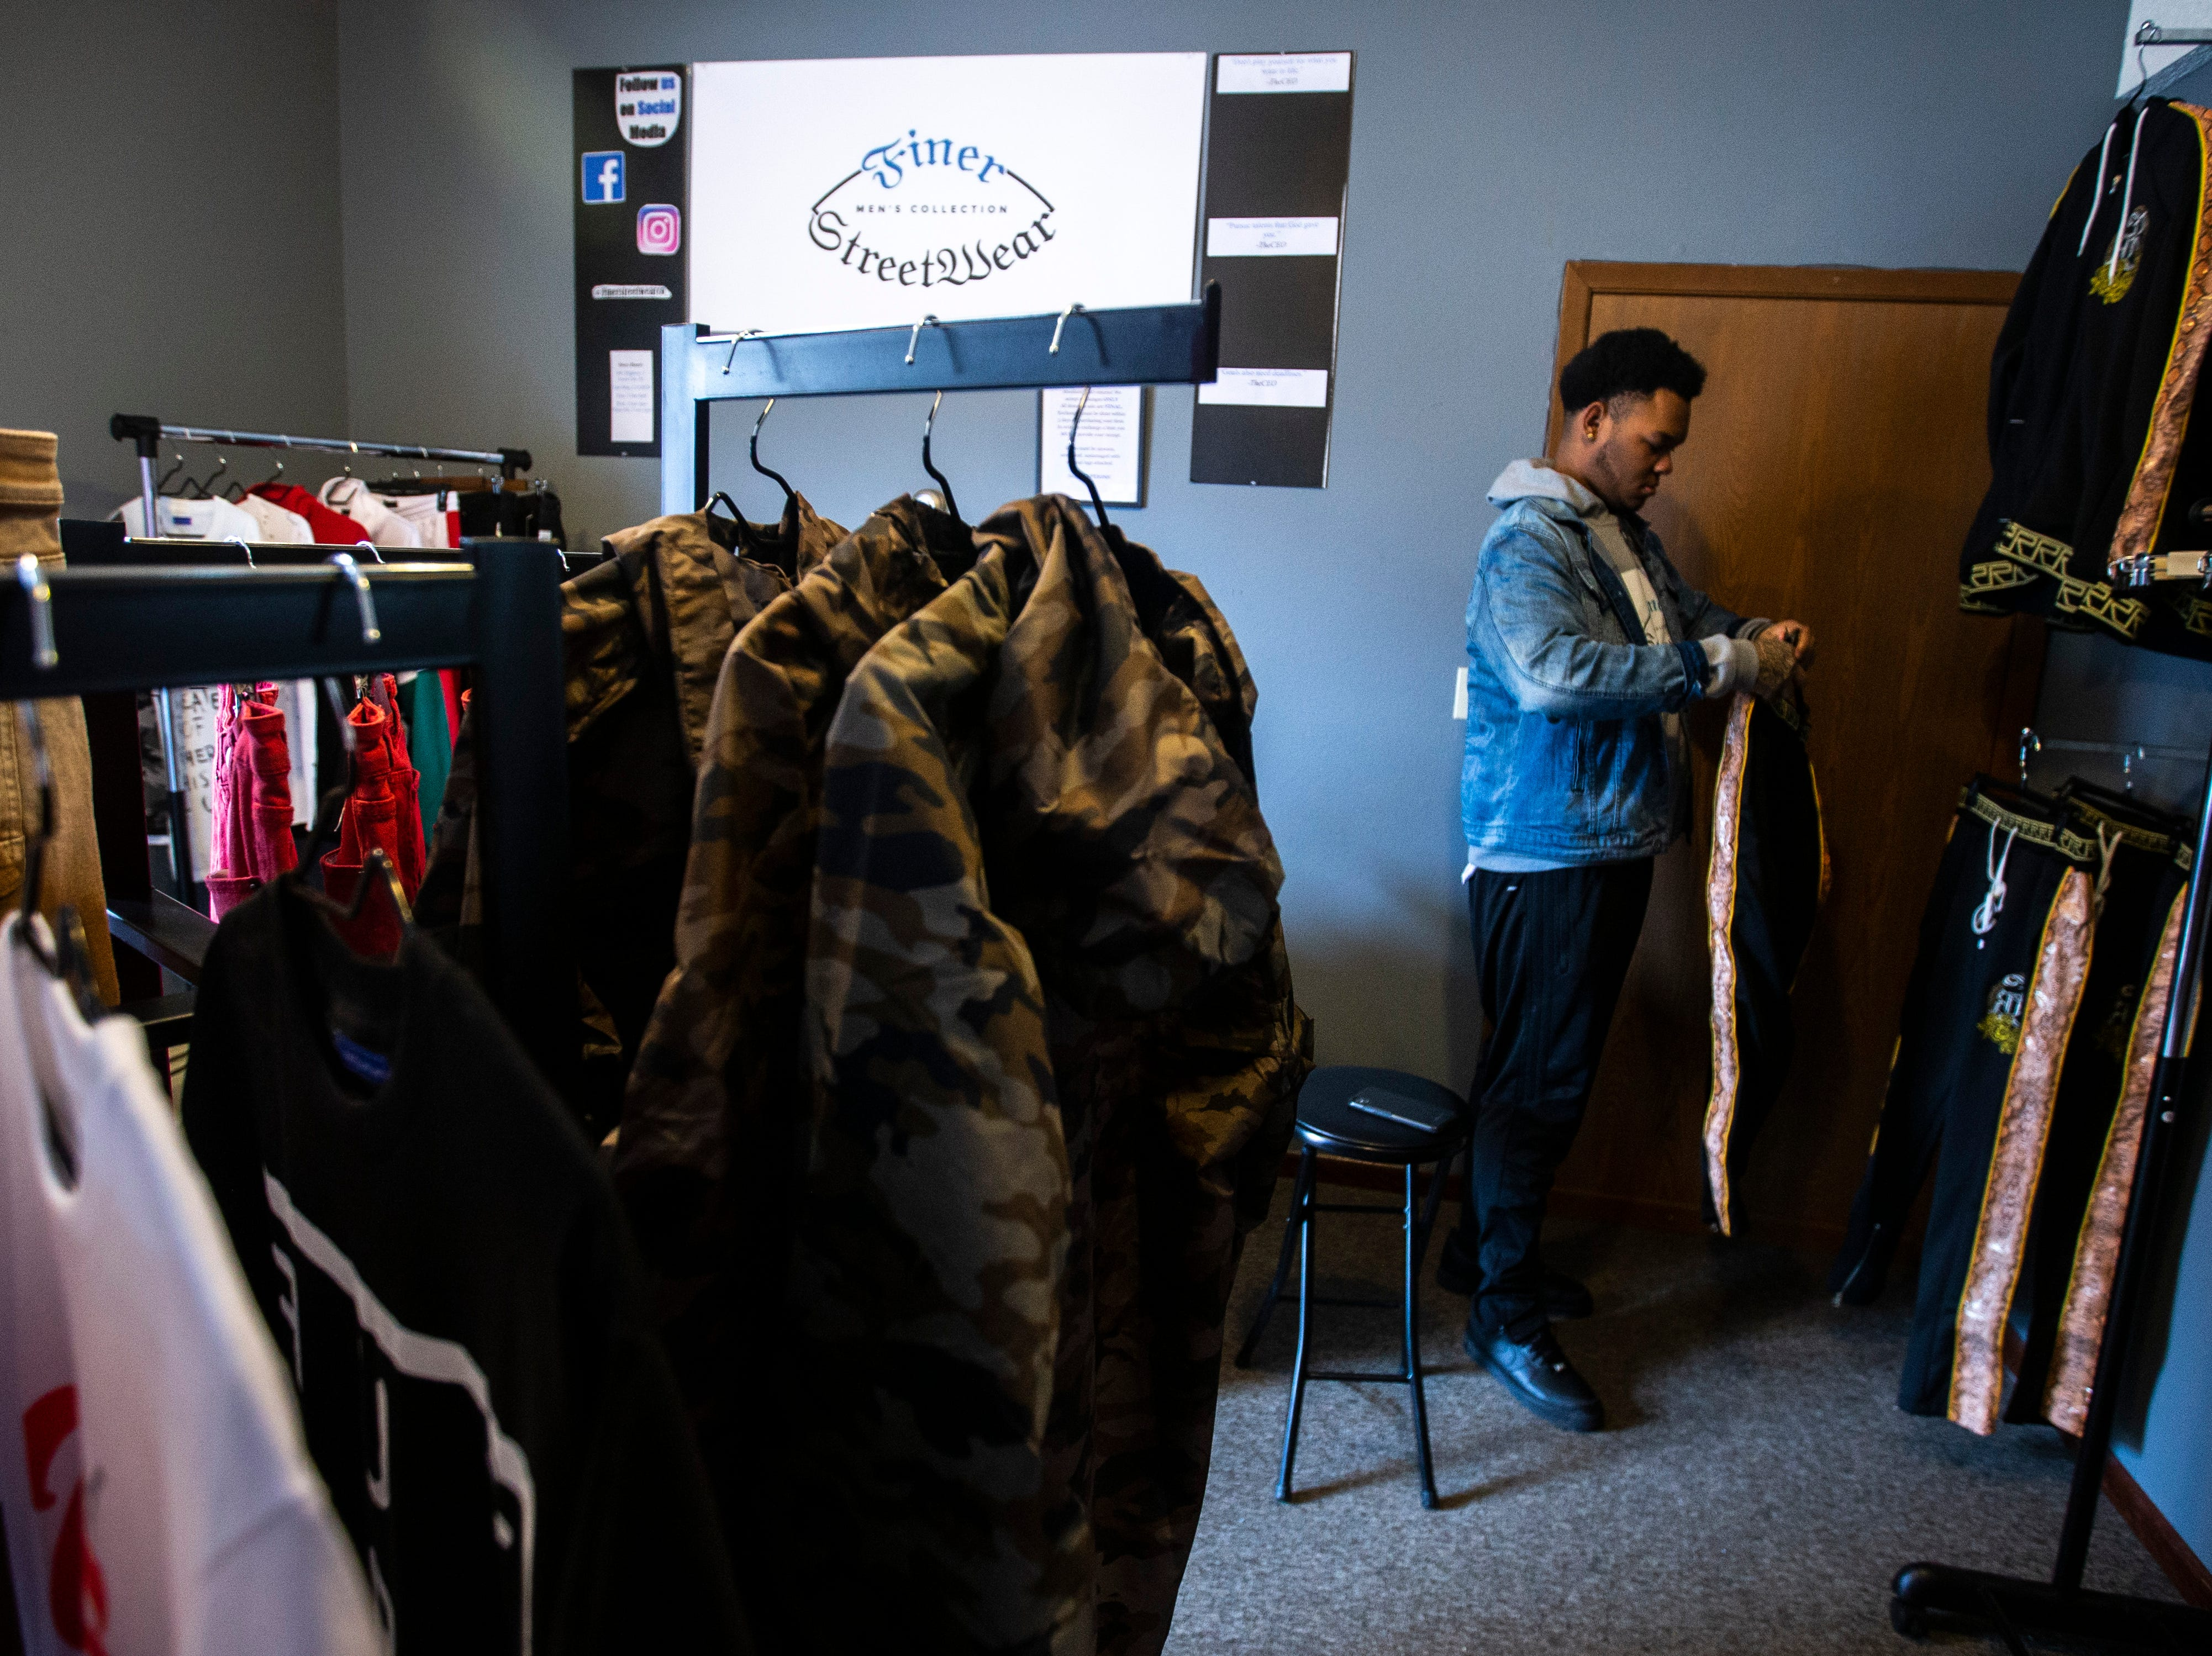 Markeece Johnson organizes inventory on Tuesday, Feb. 26, 2019, inside Finer Streetwear Co. at 441 Highway 1 West in Iowa City, Iowa. Johnson opened the store in November of 2018.